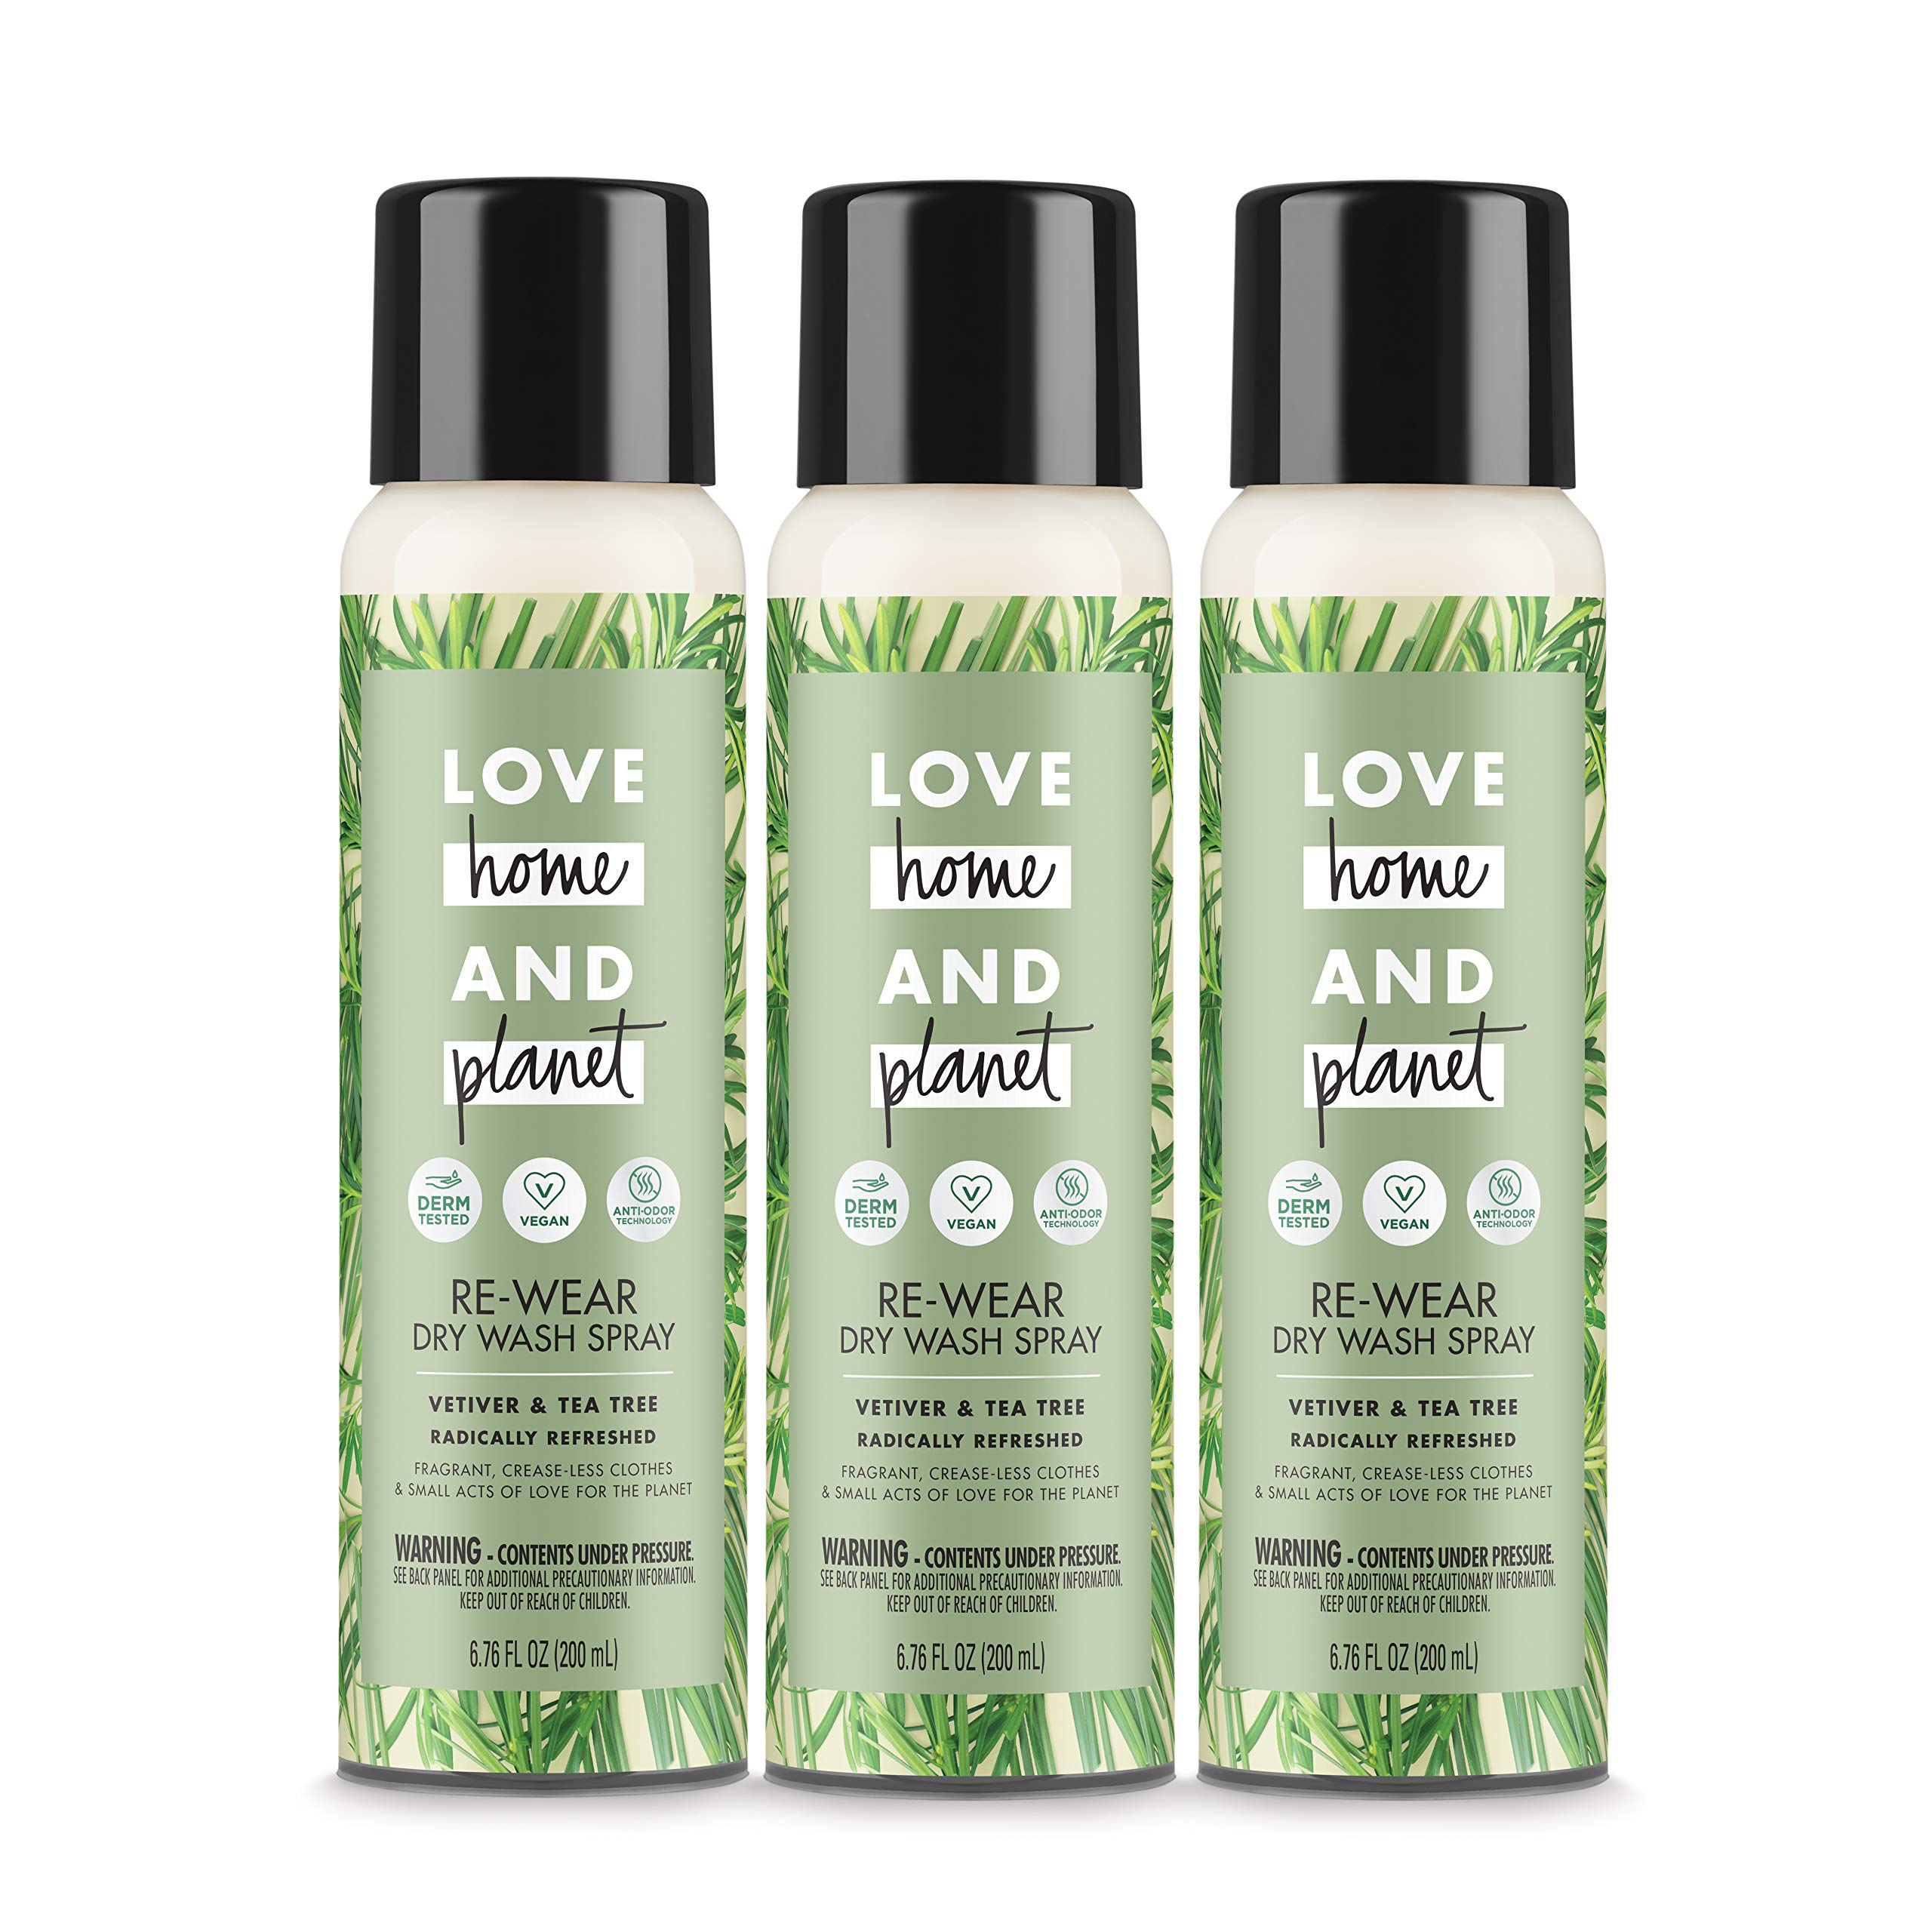 Love Home and Planet Dry Wash Spray Vetiver & Tea Tree Oil 6.7 oz, 3 Pack